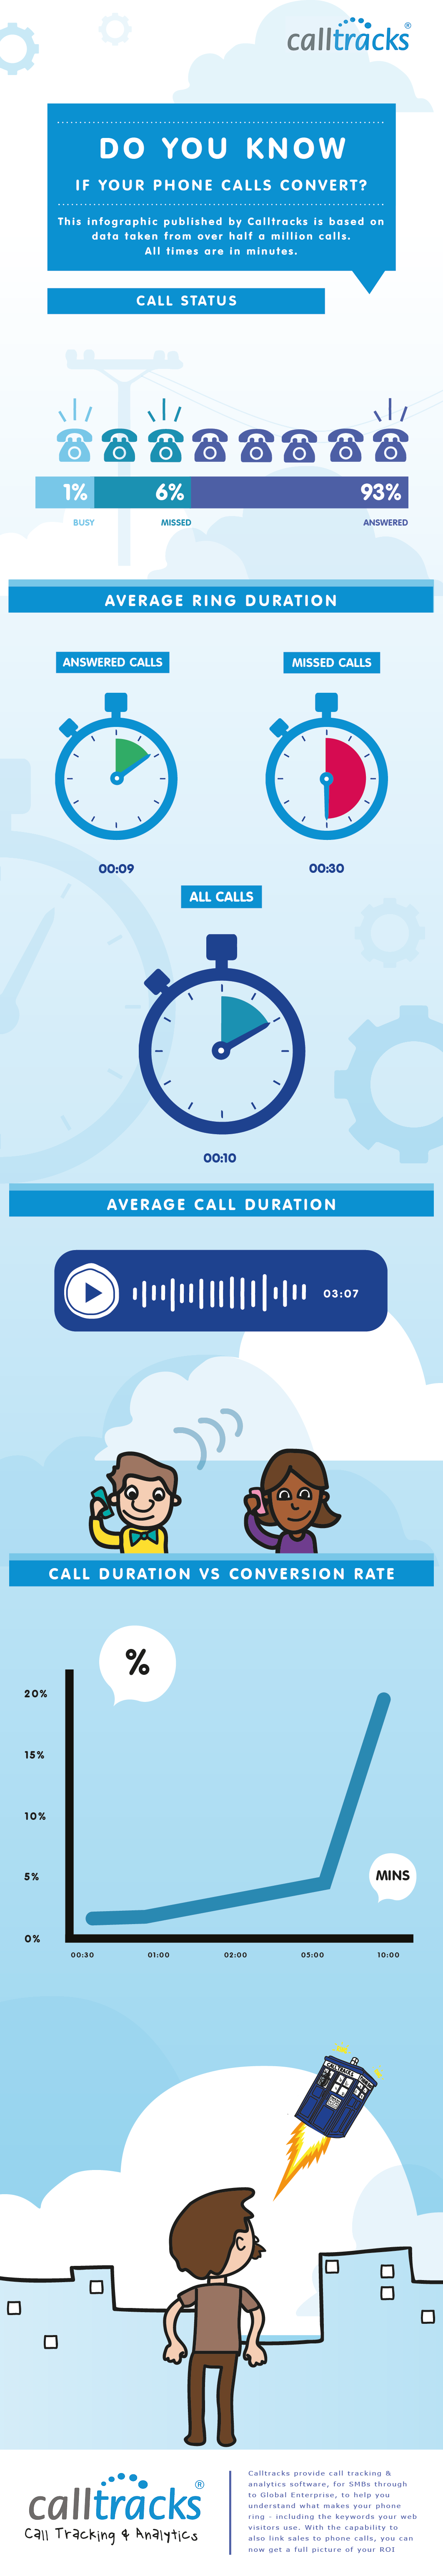 Do-phone-calls-convert-infographic